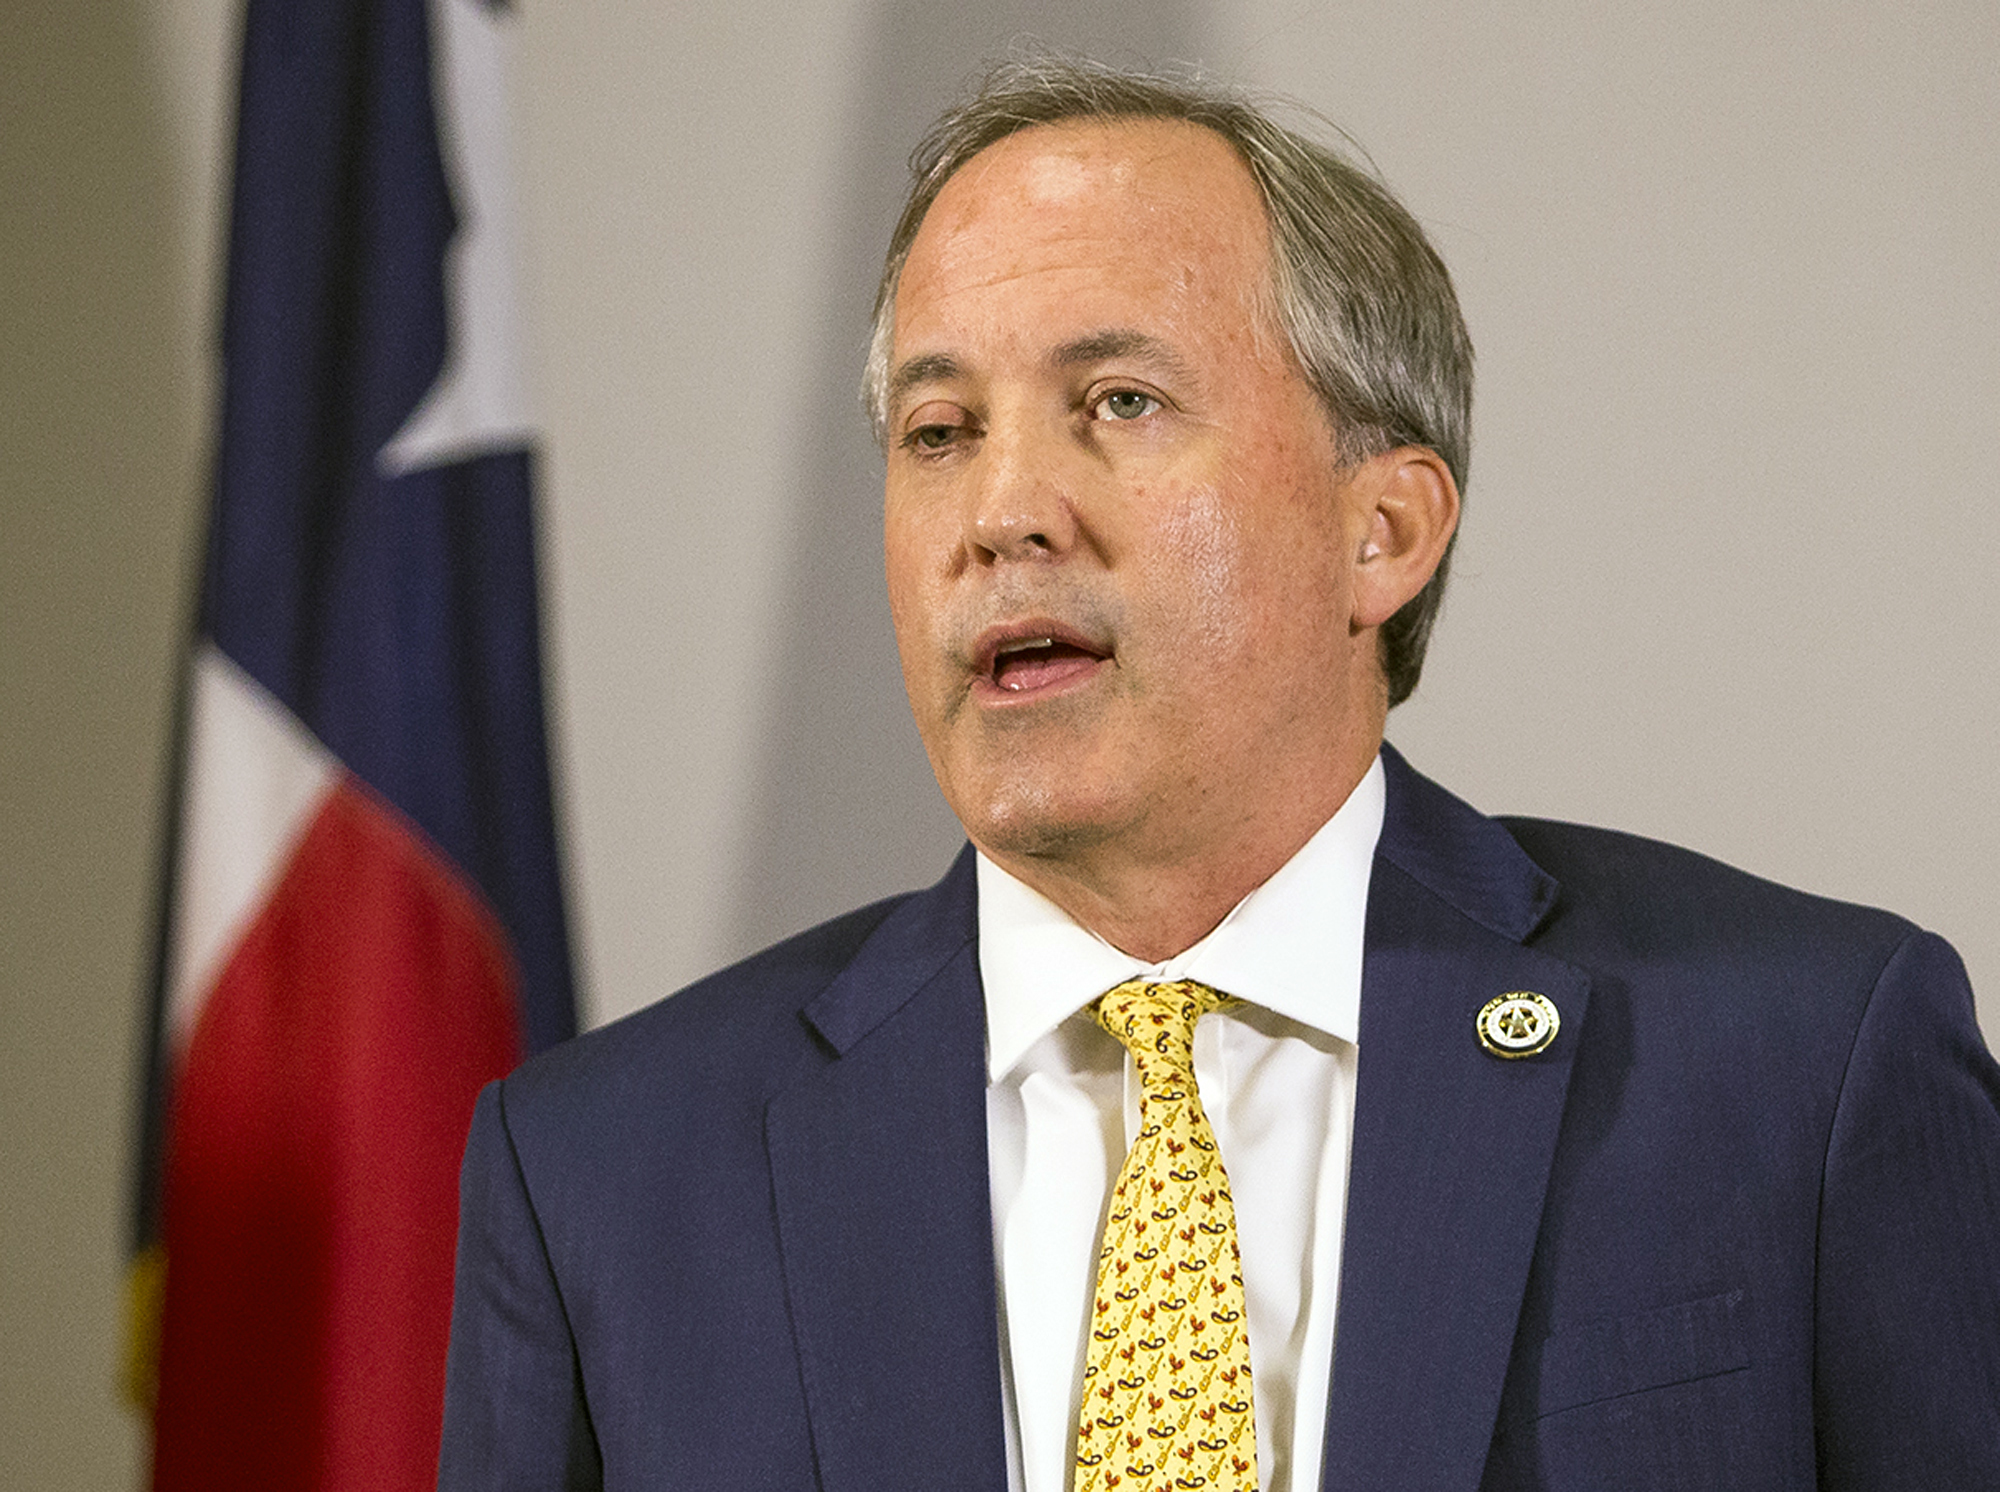 In this May 1, 2018, file photo, Texas Attorney General Ken Paxton speaks at a news conference in Austin, Texas.